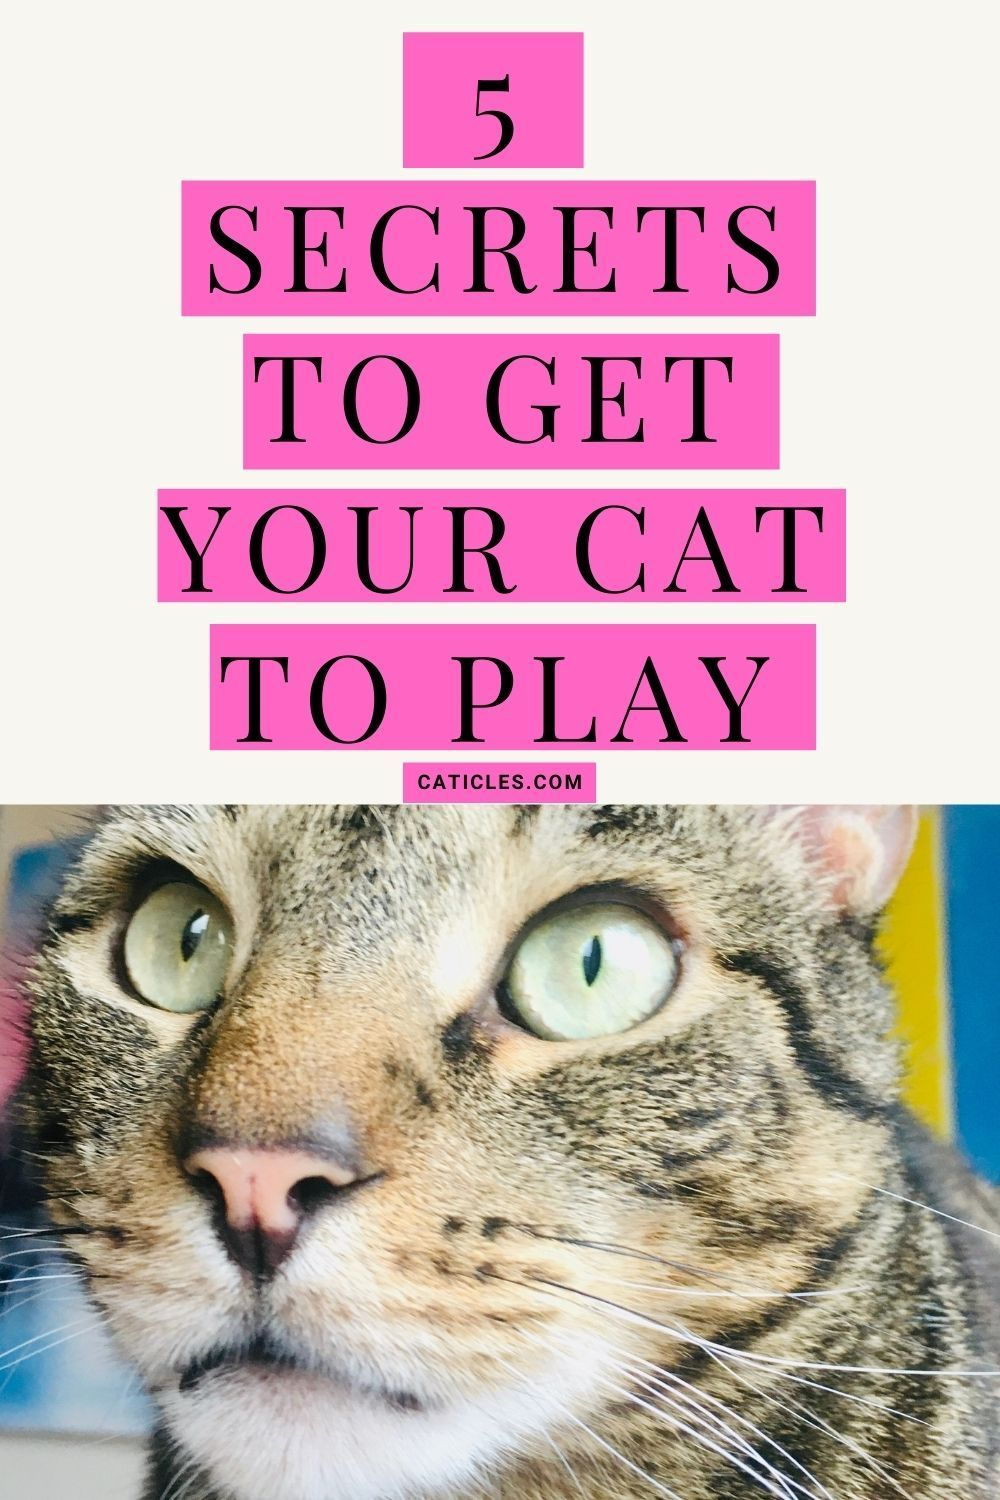 How To Play With A Cat Get Your Cat To Play In 30 Days In 2020 Cat Care Tips Getting A Kitten Kitten Care